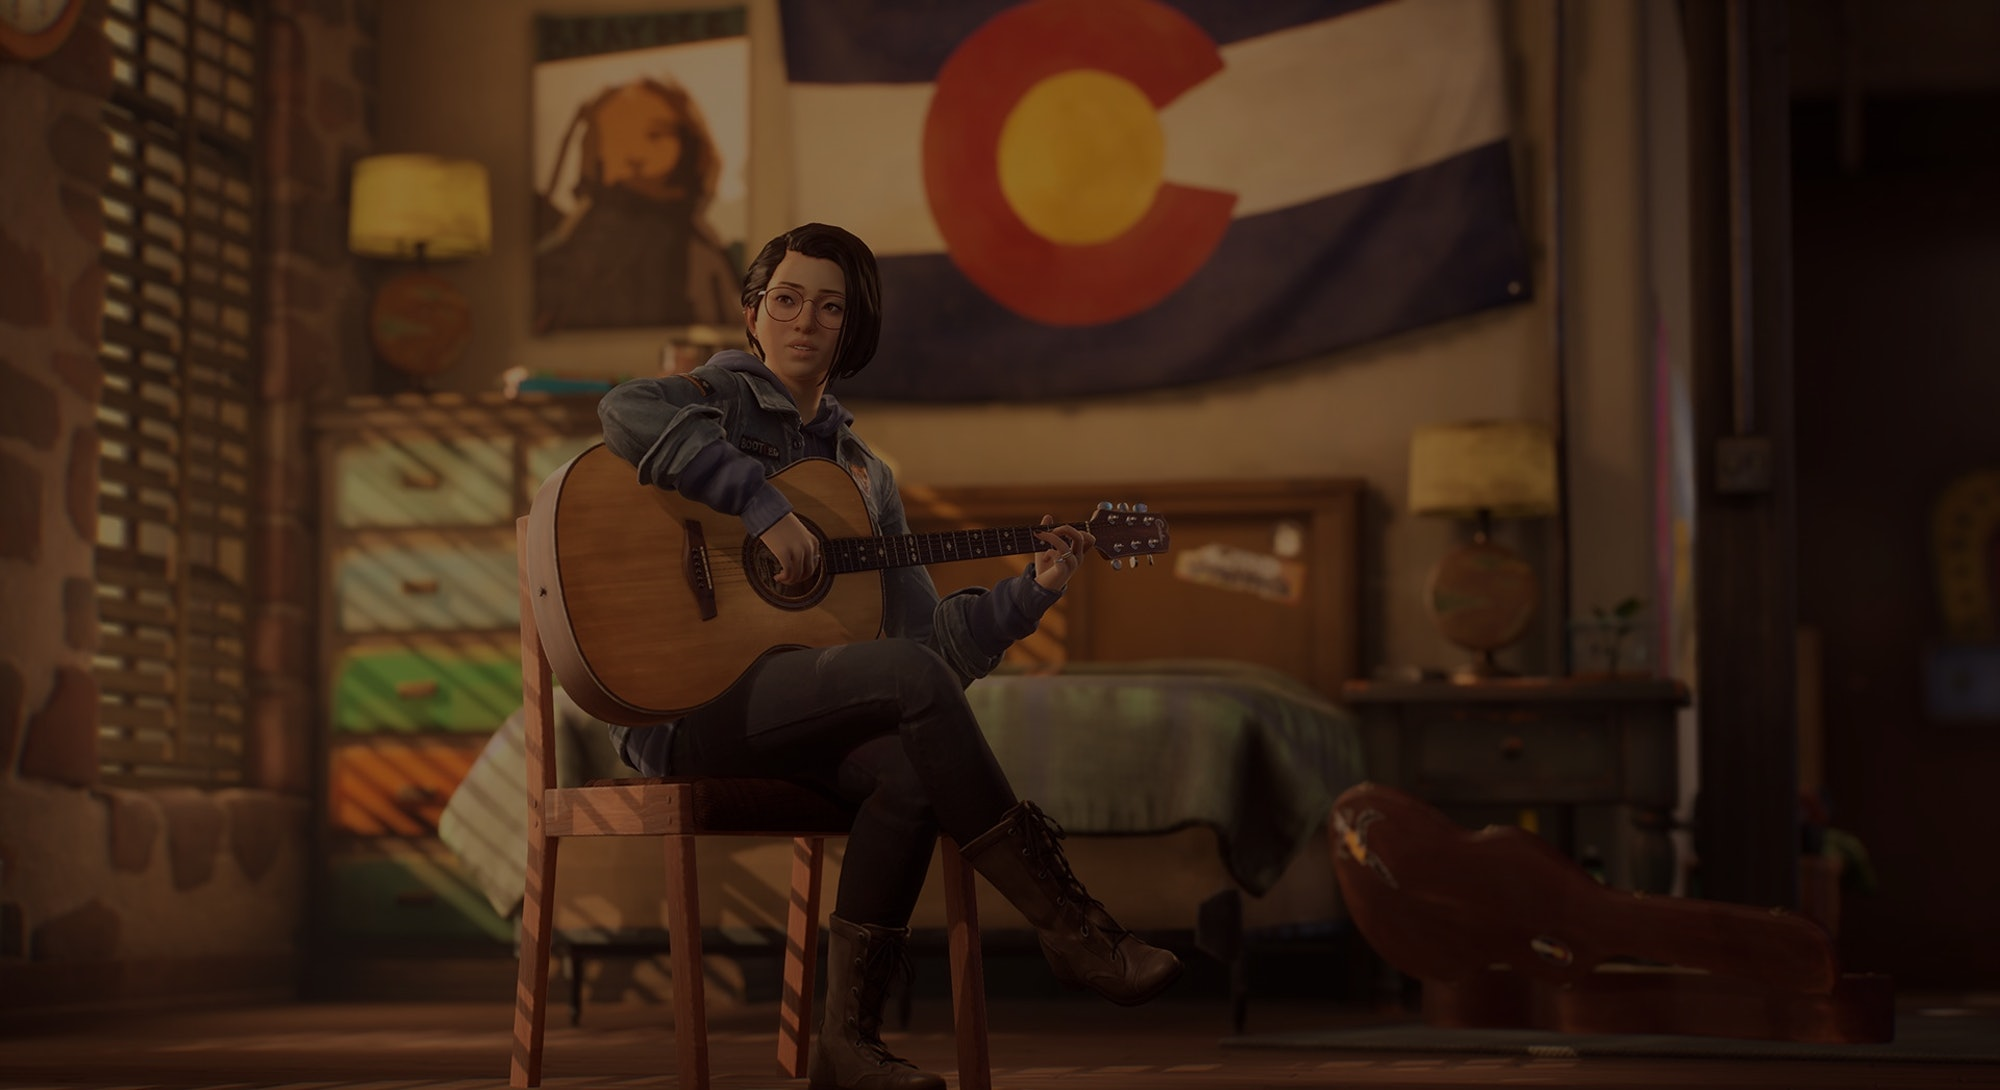 screenshot of alex chen playing guitar from life is strange: true colors trailer